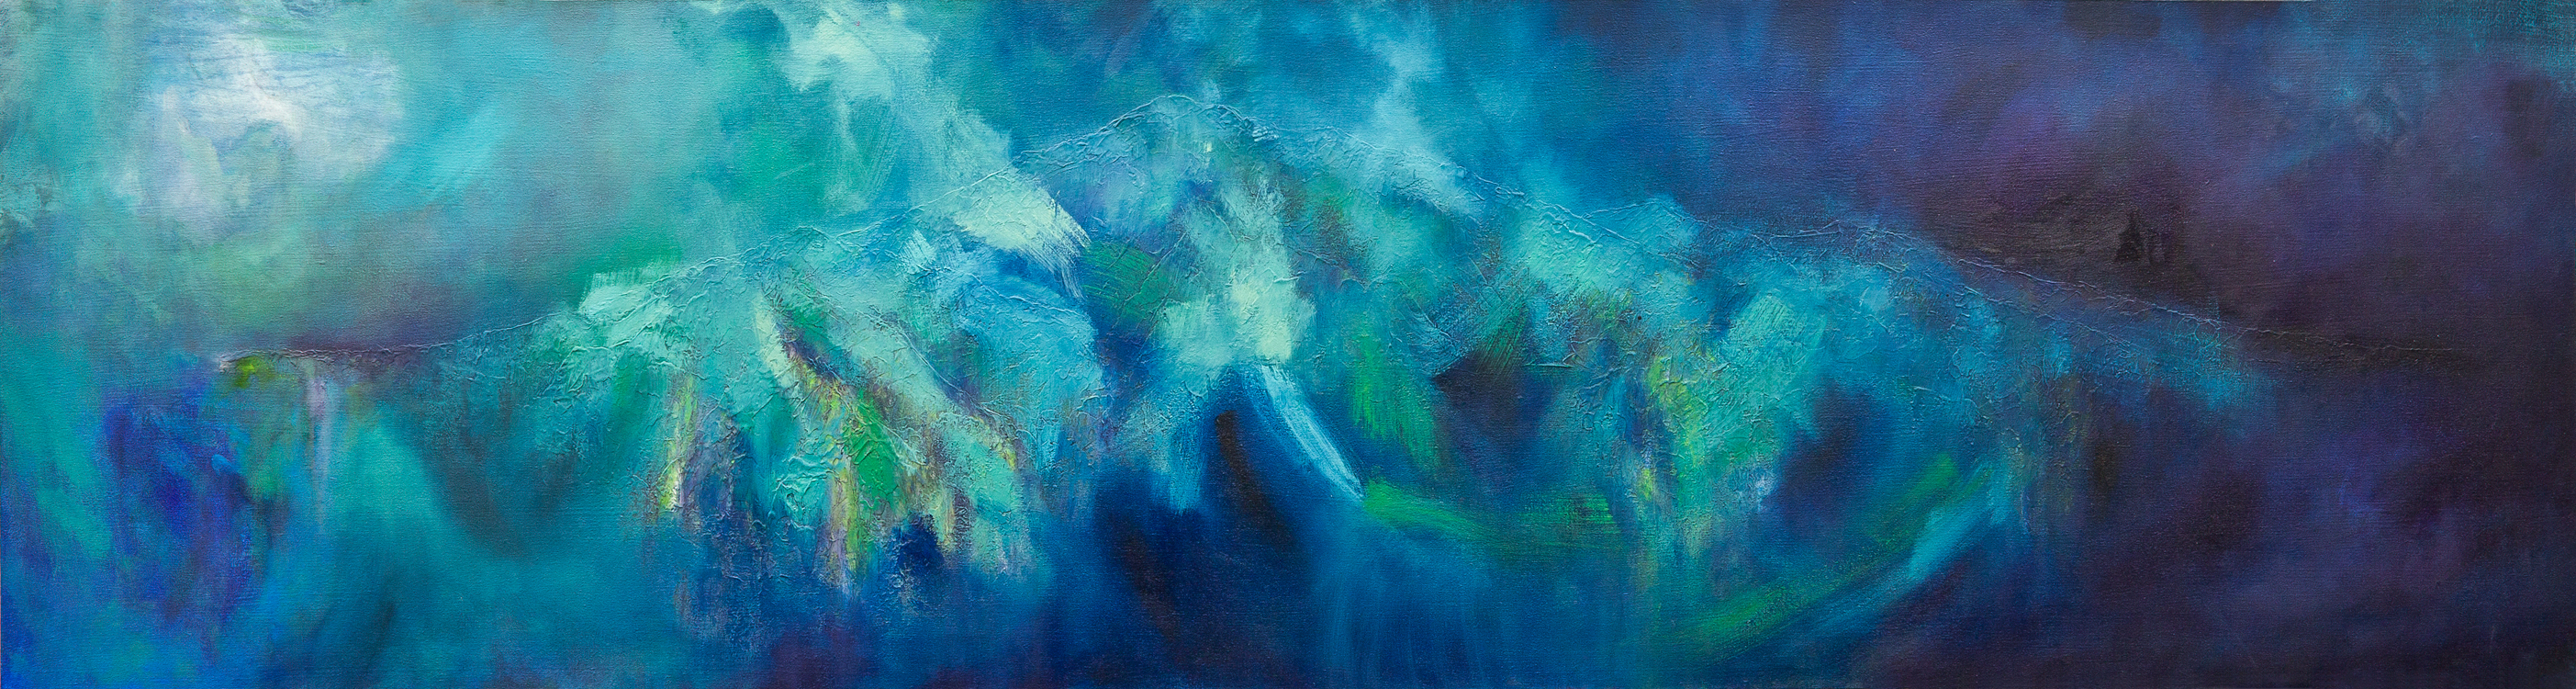 "Submerged: Drifting Ephemera (2017), Media: Oil, Acrylic and Mixed Media on Canvas, 24"" x 90"""